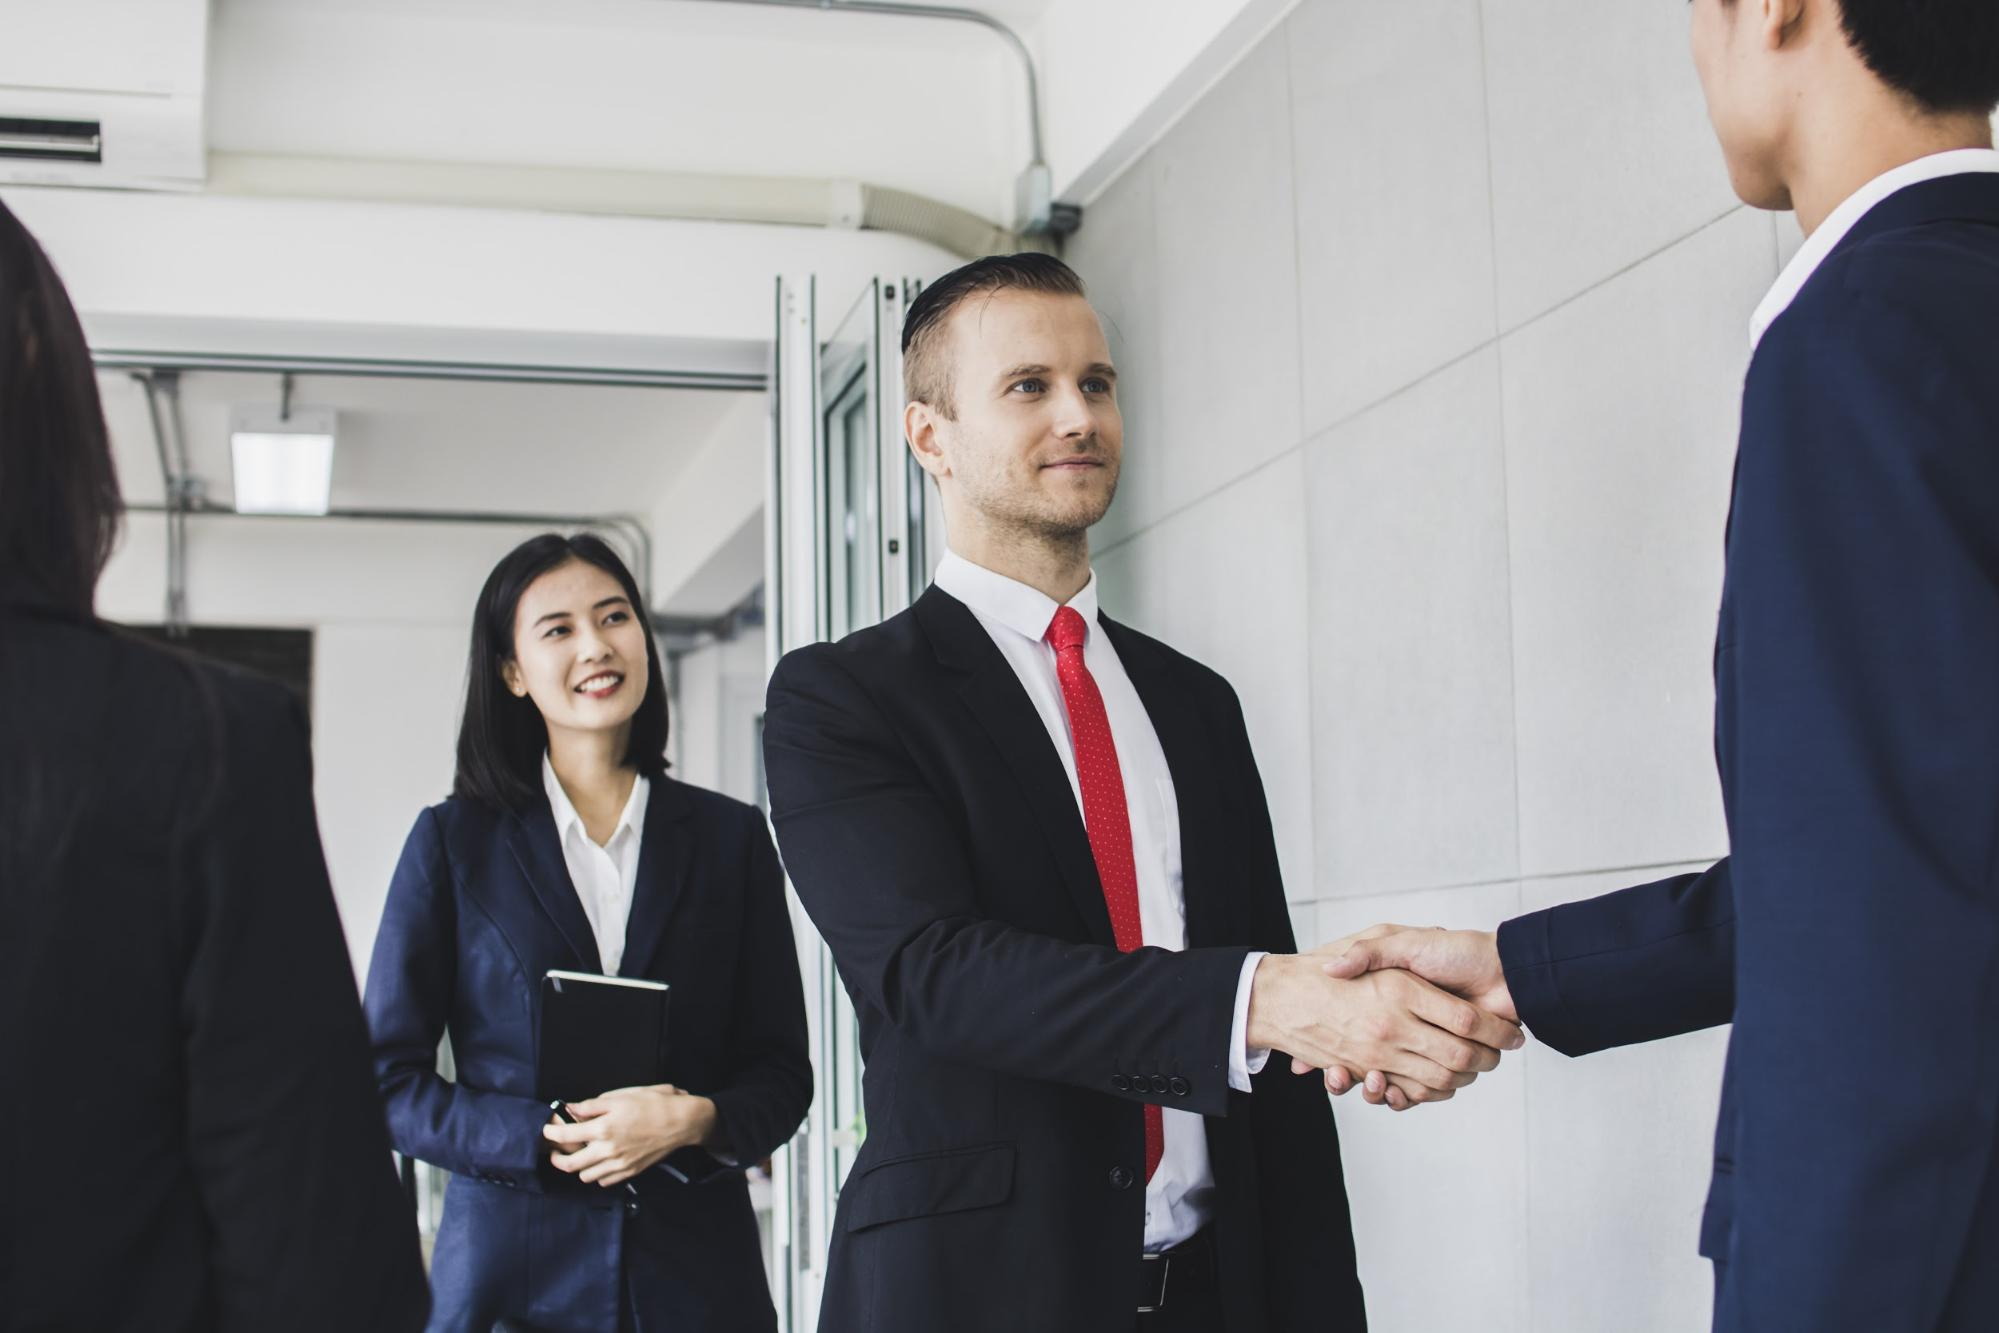 Businessmen shaking hands with one of their colleagues smiling near them